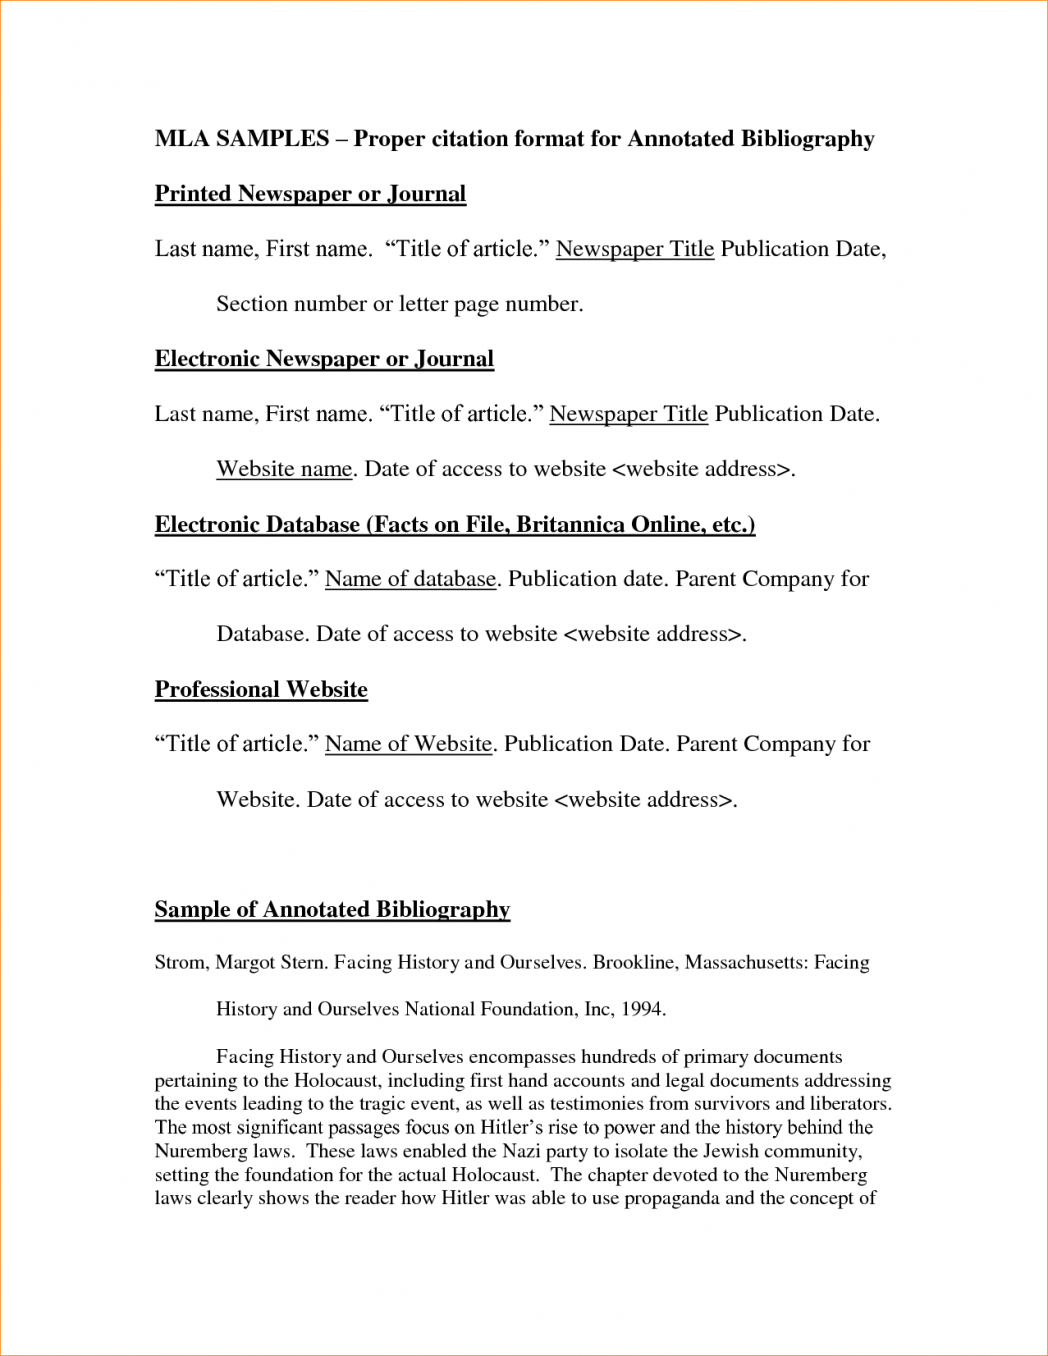 017 Essay Example Mla Format In Narrative Annotated Bibliography Template With Cover Page Title Works Cited Argumentative Persuasive Pdf 1048x1356 Beautiful Sample 2017 Paper Full